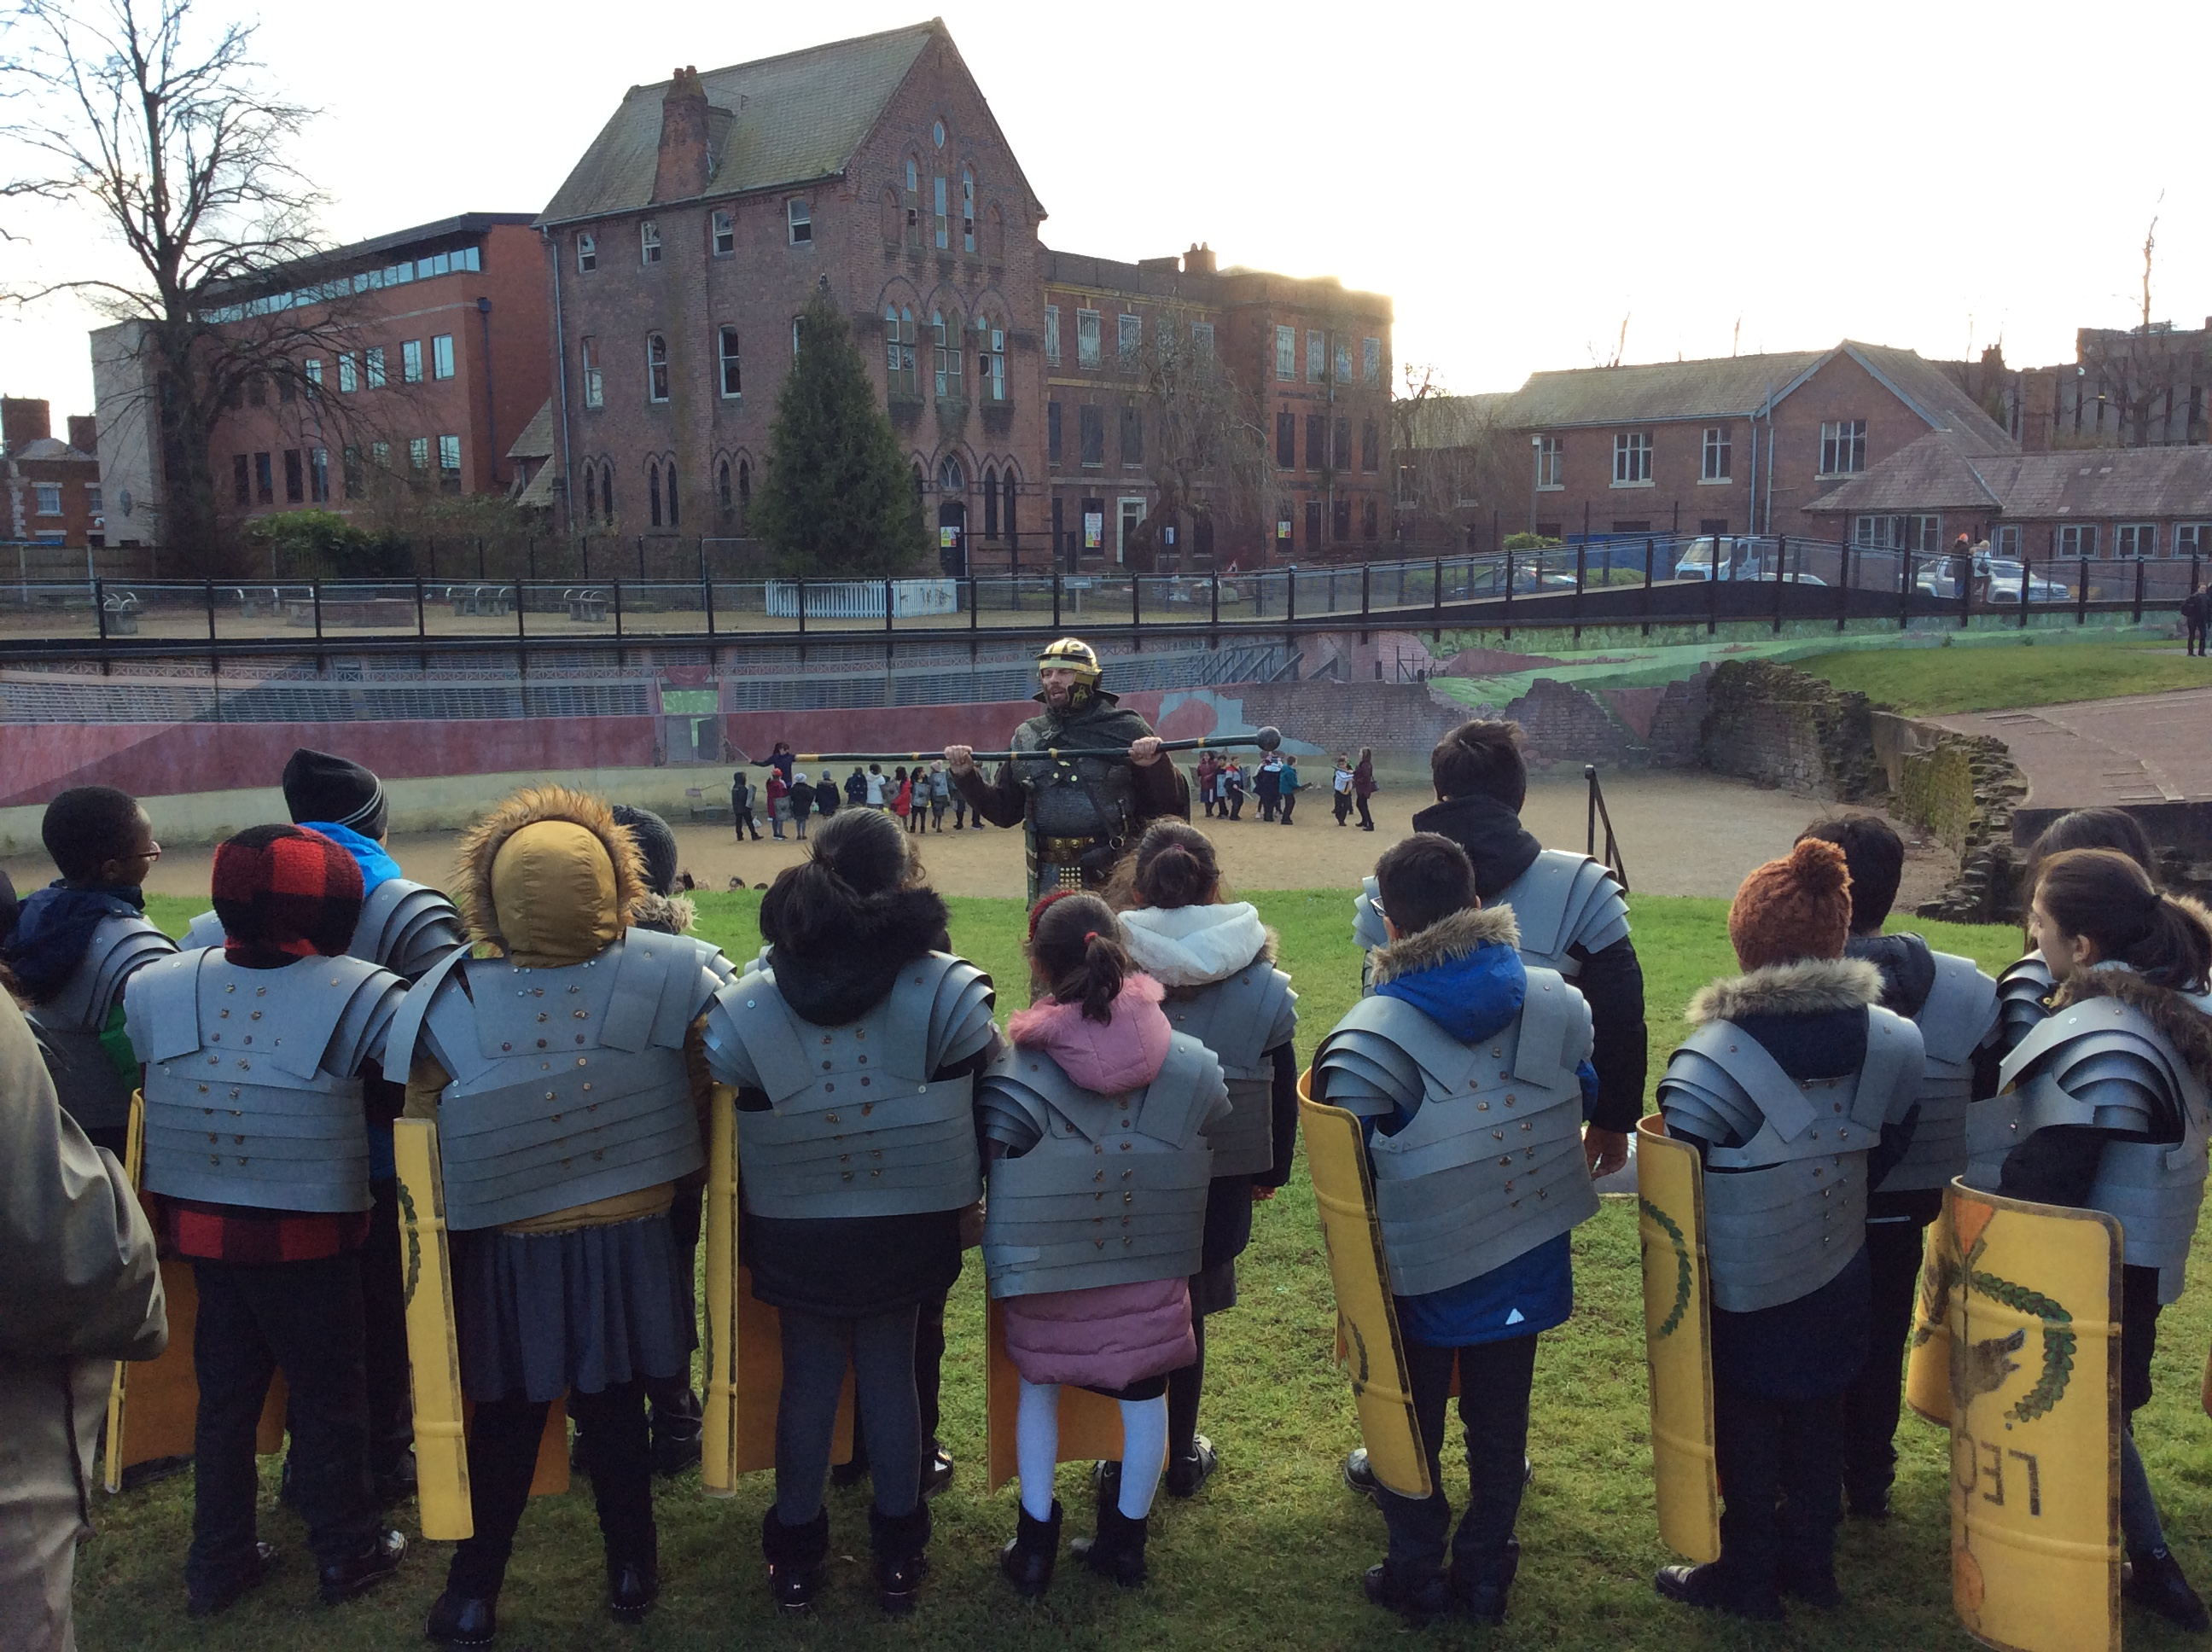 Year 4 visited the Roman town of Chester